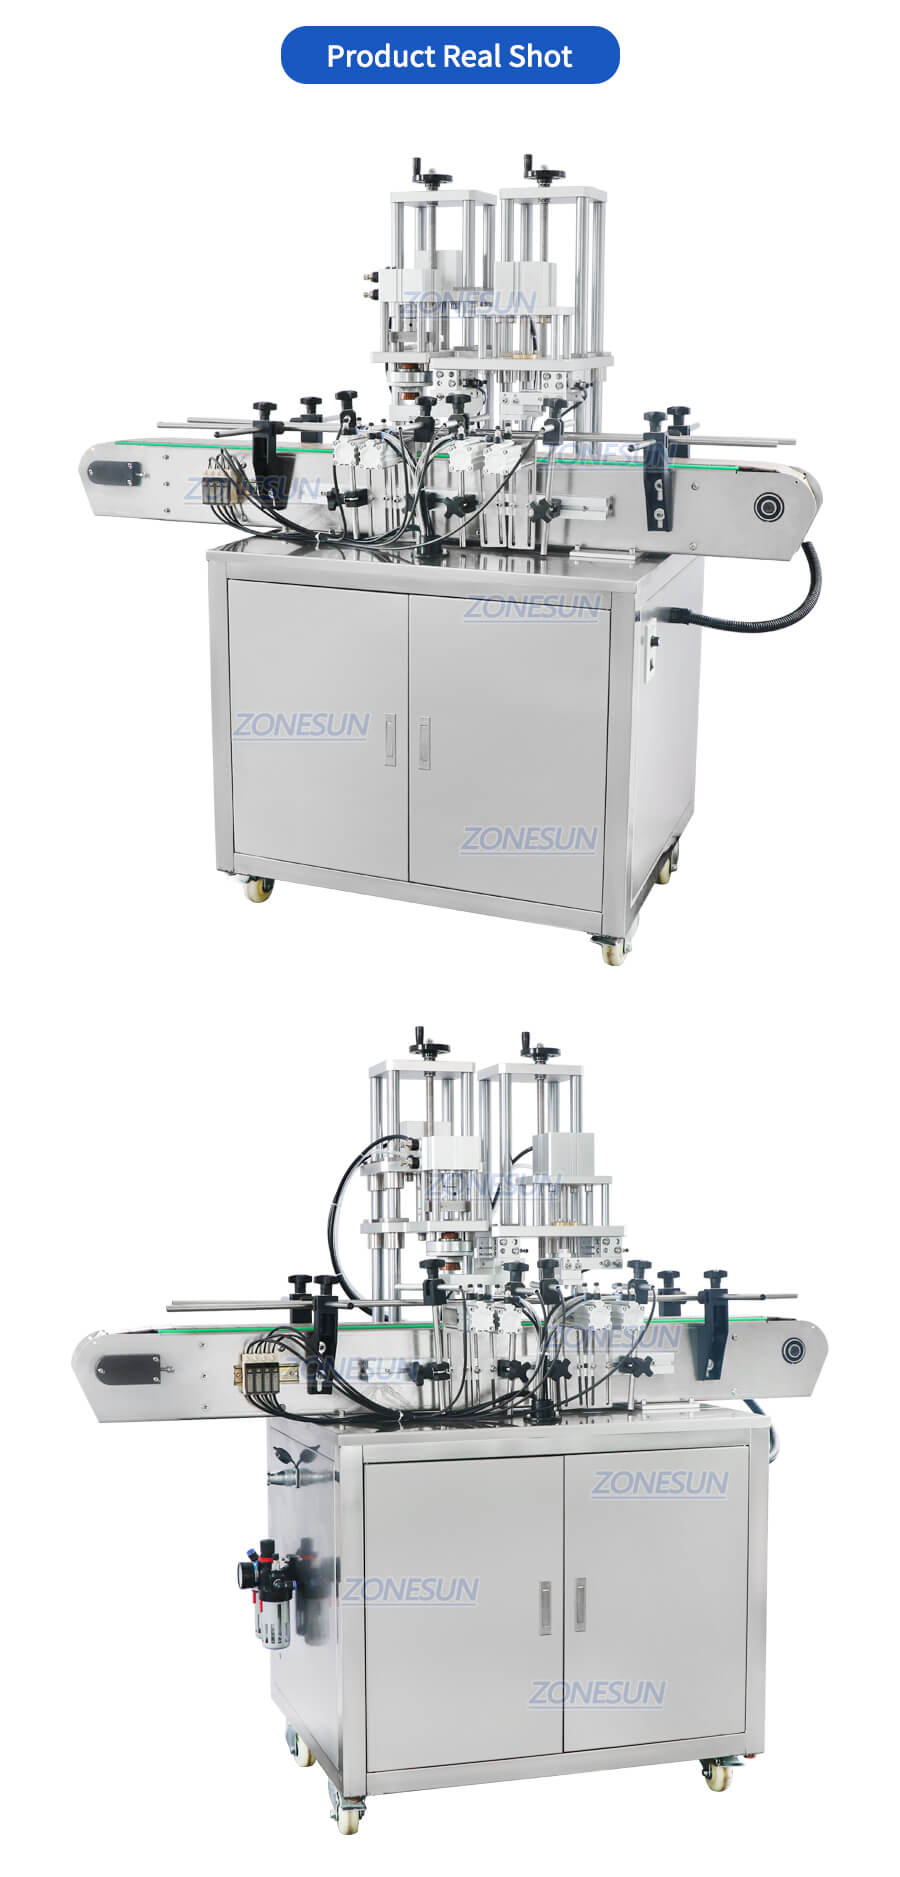 ZS-YG09 Automatic Perfume Bottle Capping Machine